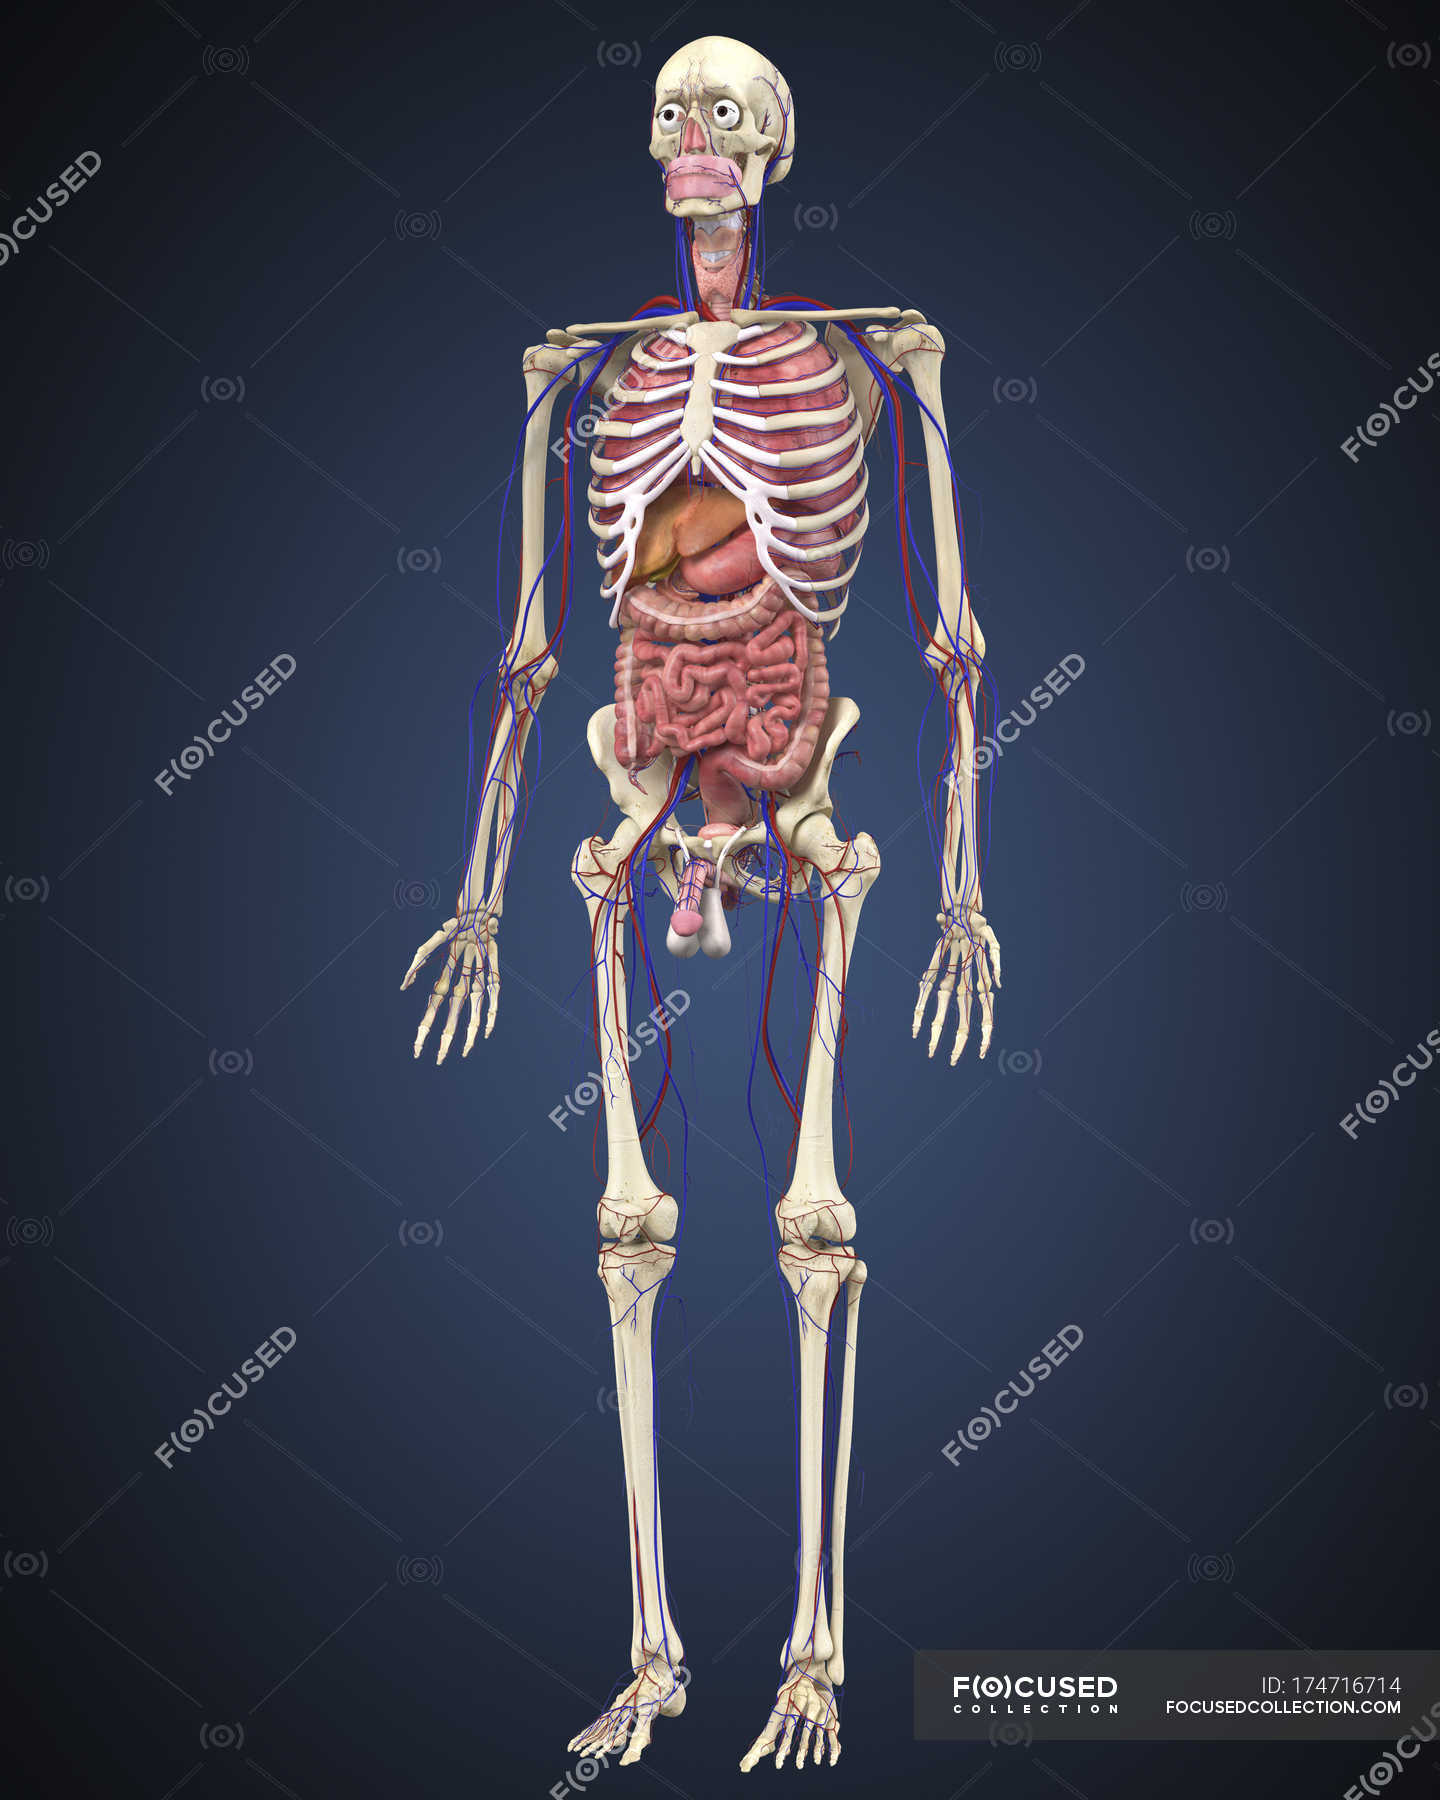 Human Skeleton With Organs And Circulatory System Stock Photo